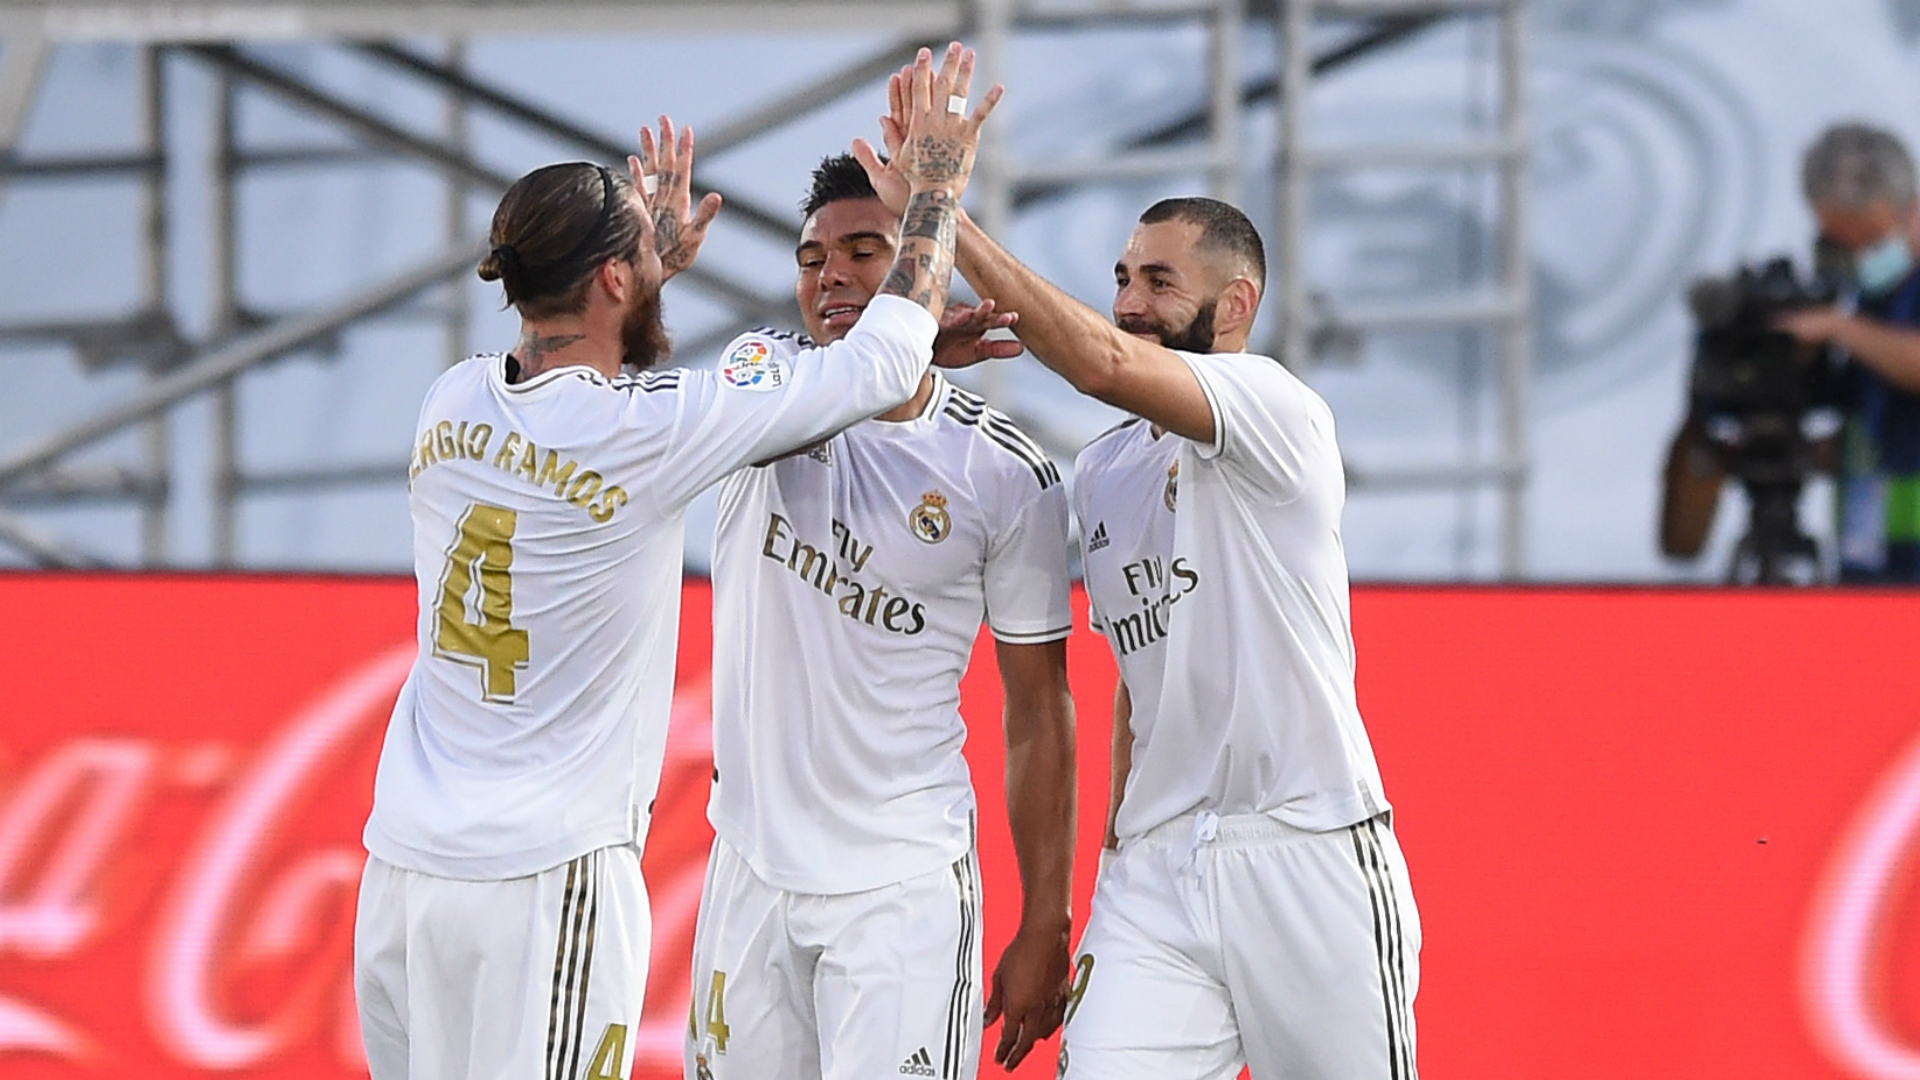 Real Madrid 2-1 Villarreal: Benzema double secures 34th LaLiga title for Los Blancos